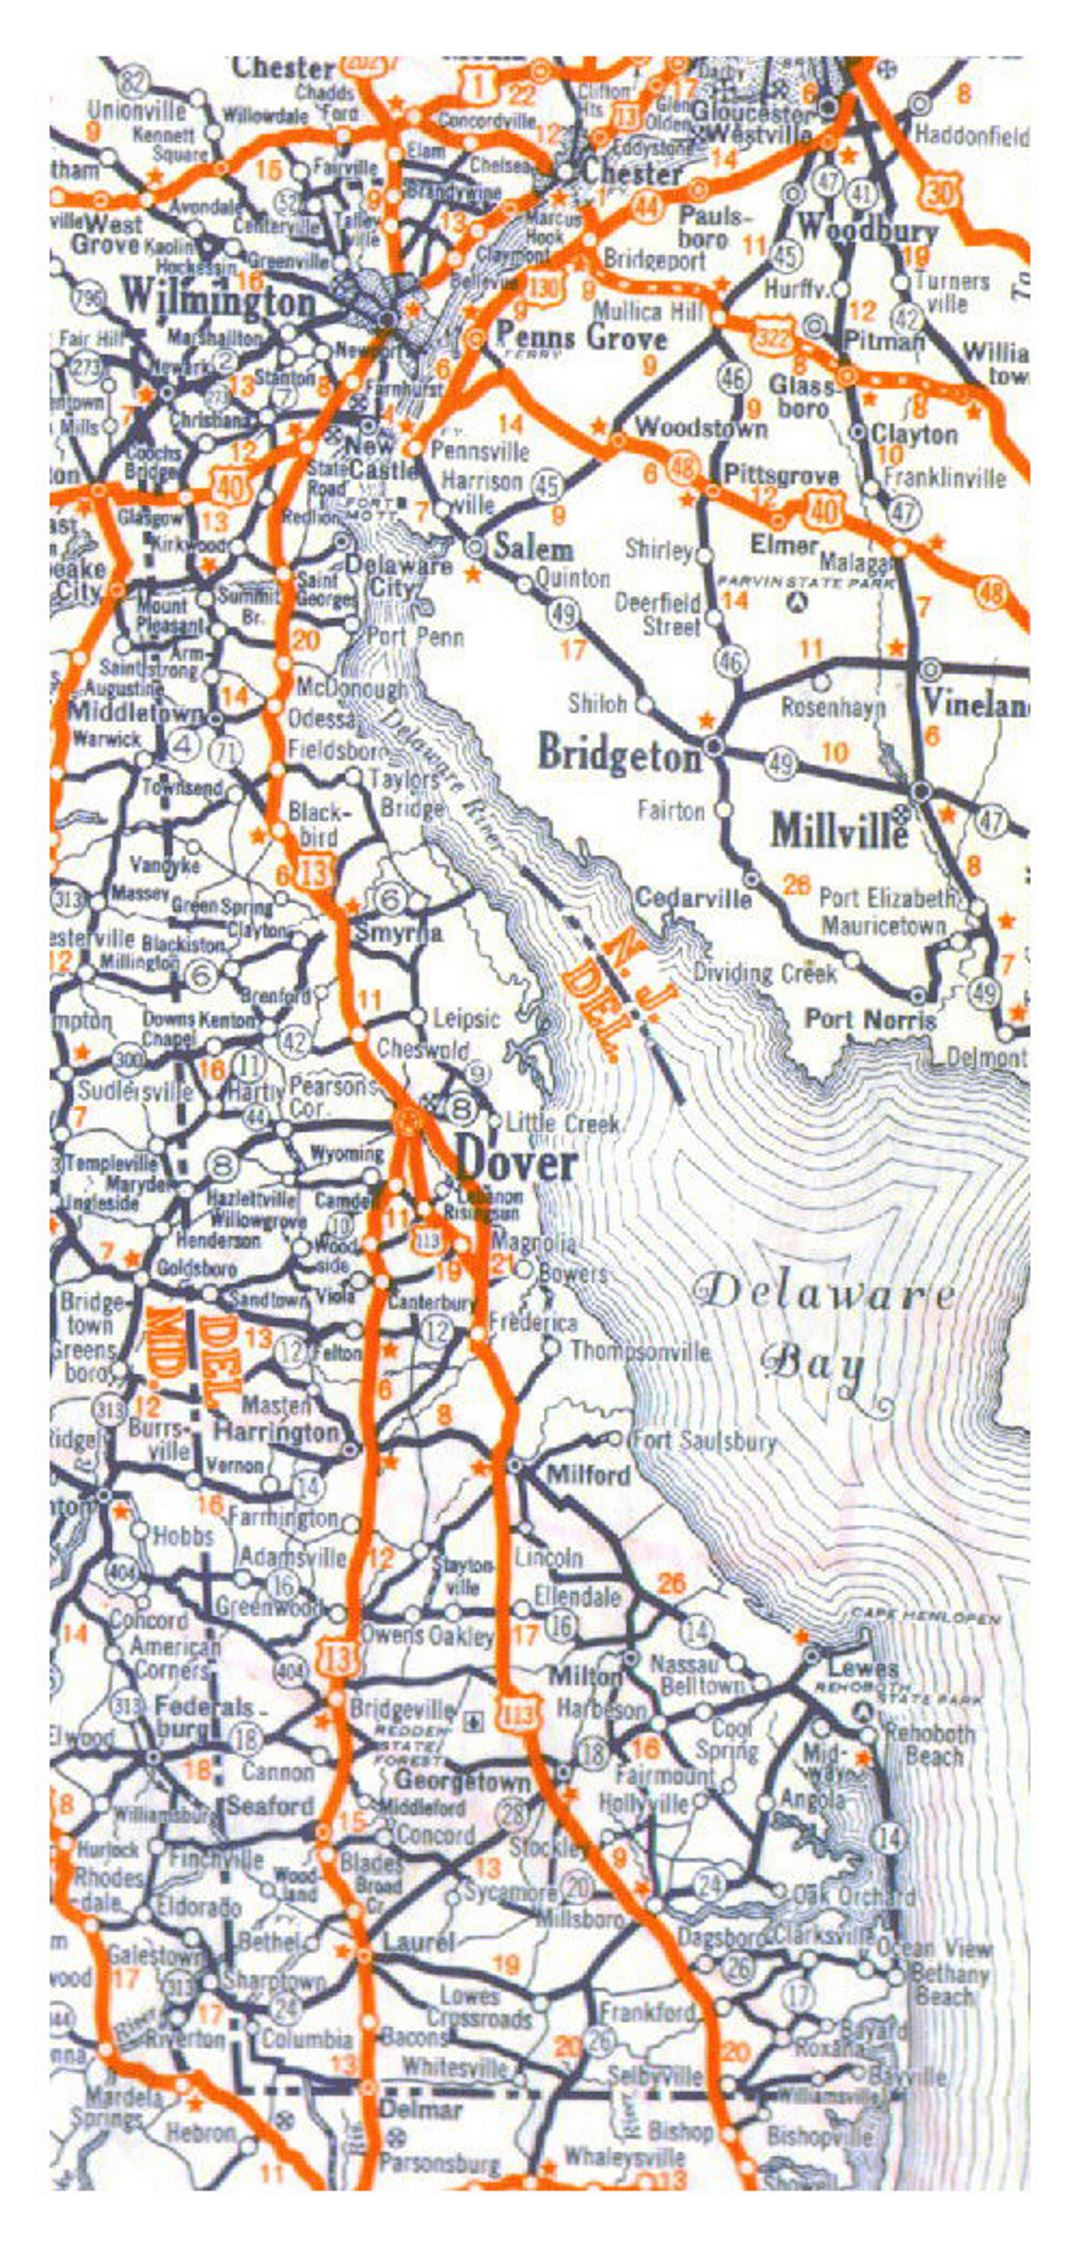 Roads and highways map of Delaware state - 1938